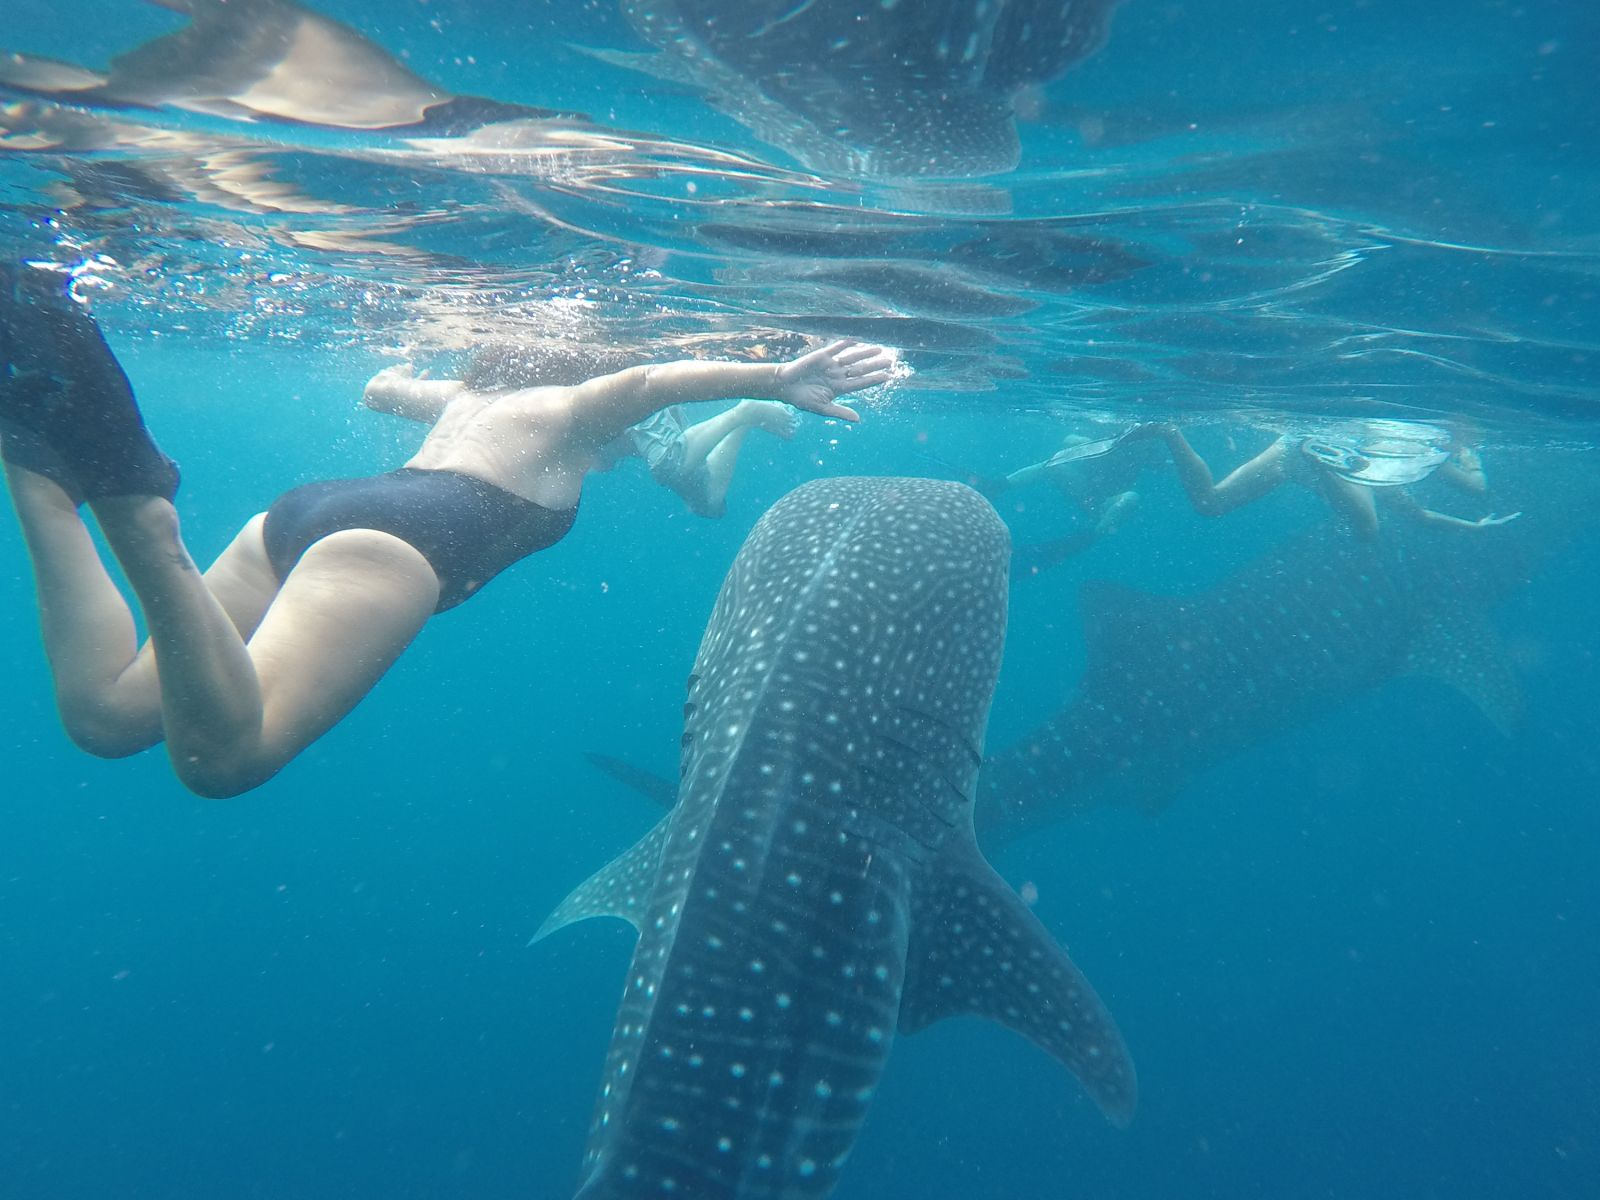 Swimming with Whale Sharks – A Profound, Once In A Lifetime Experience